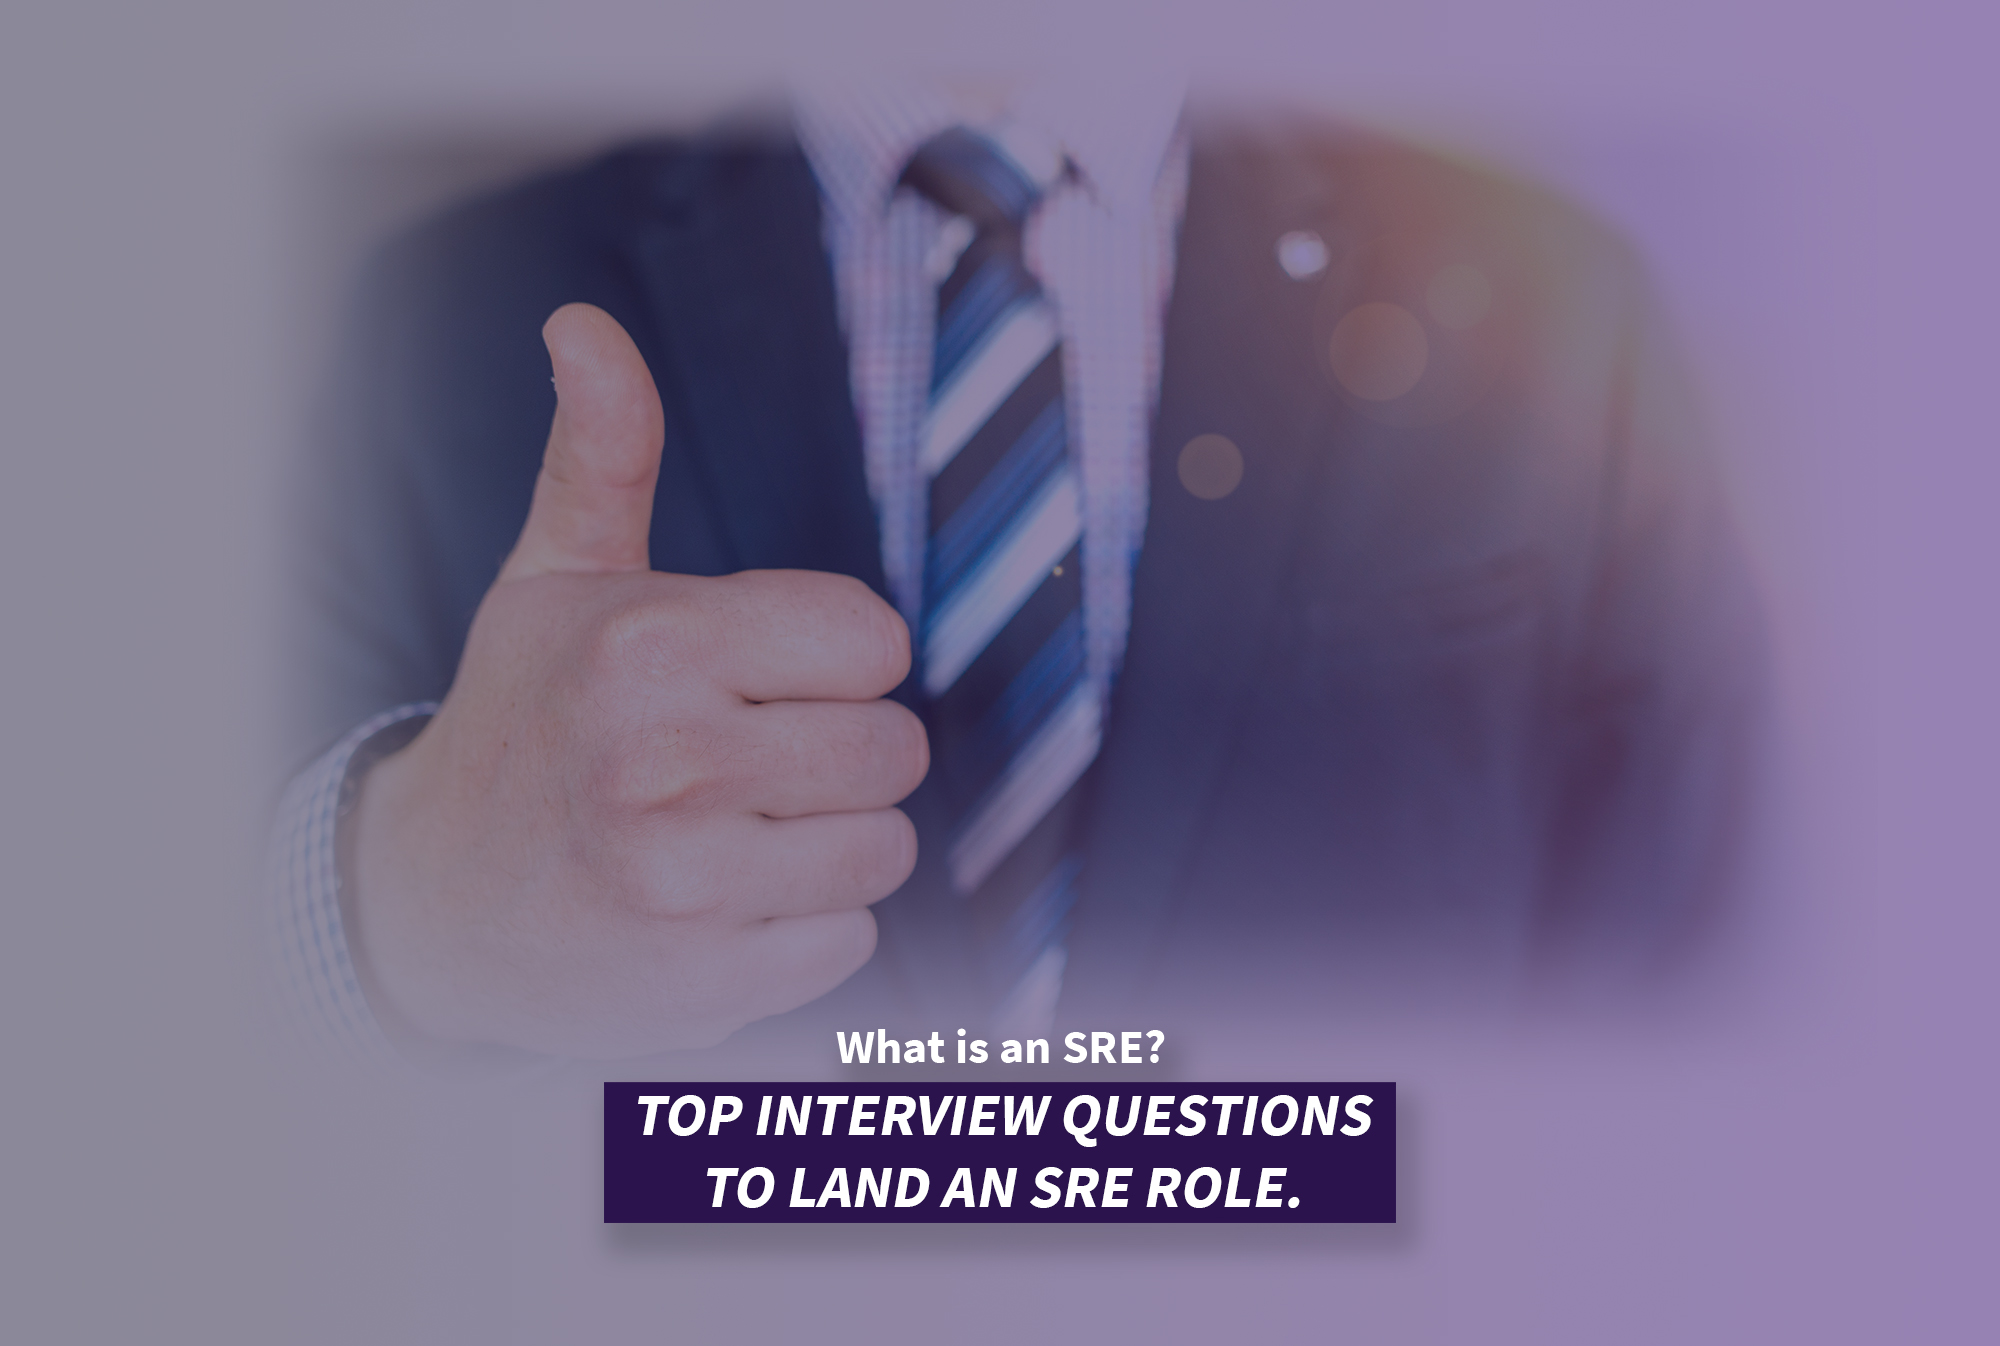 What is an SRE and top interview questions to land an SRE role